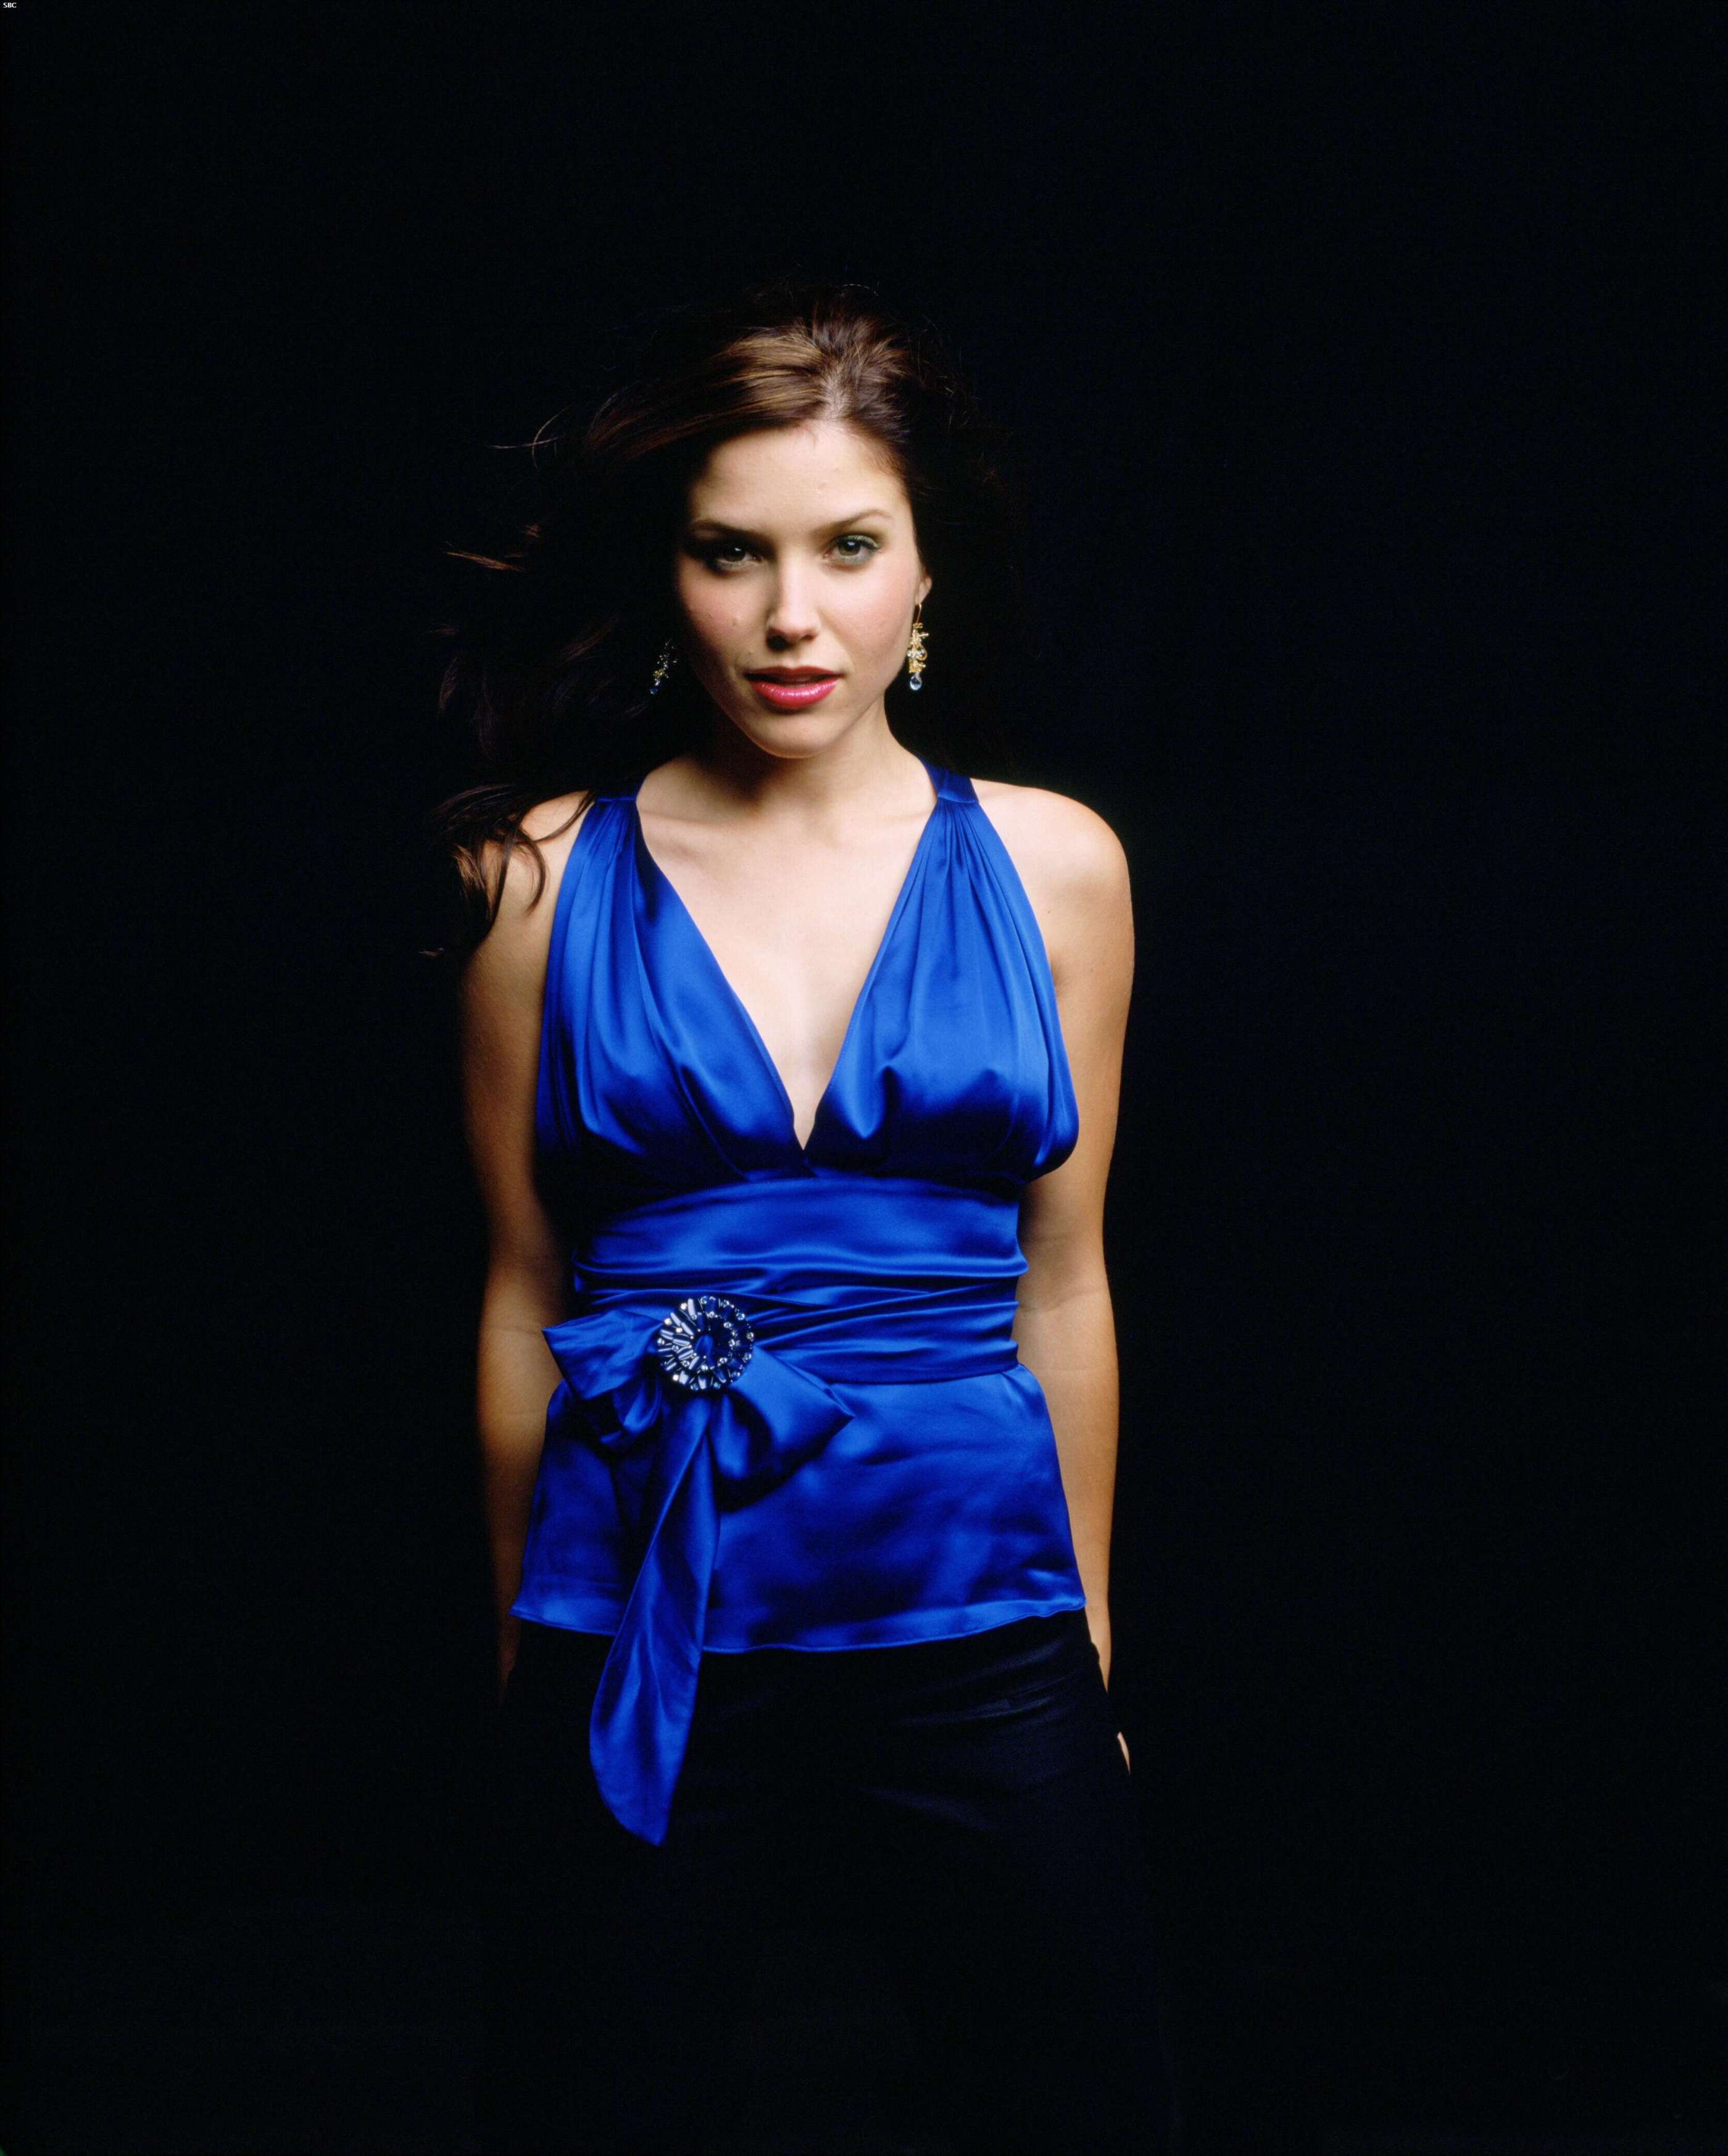 40520_Sophia_Bush_One_Tree_Hill_Promoshooting_020_123_74lo.jpg